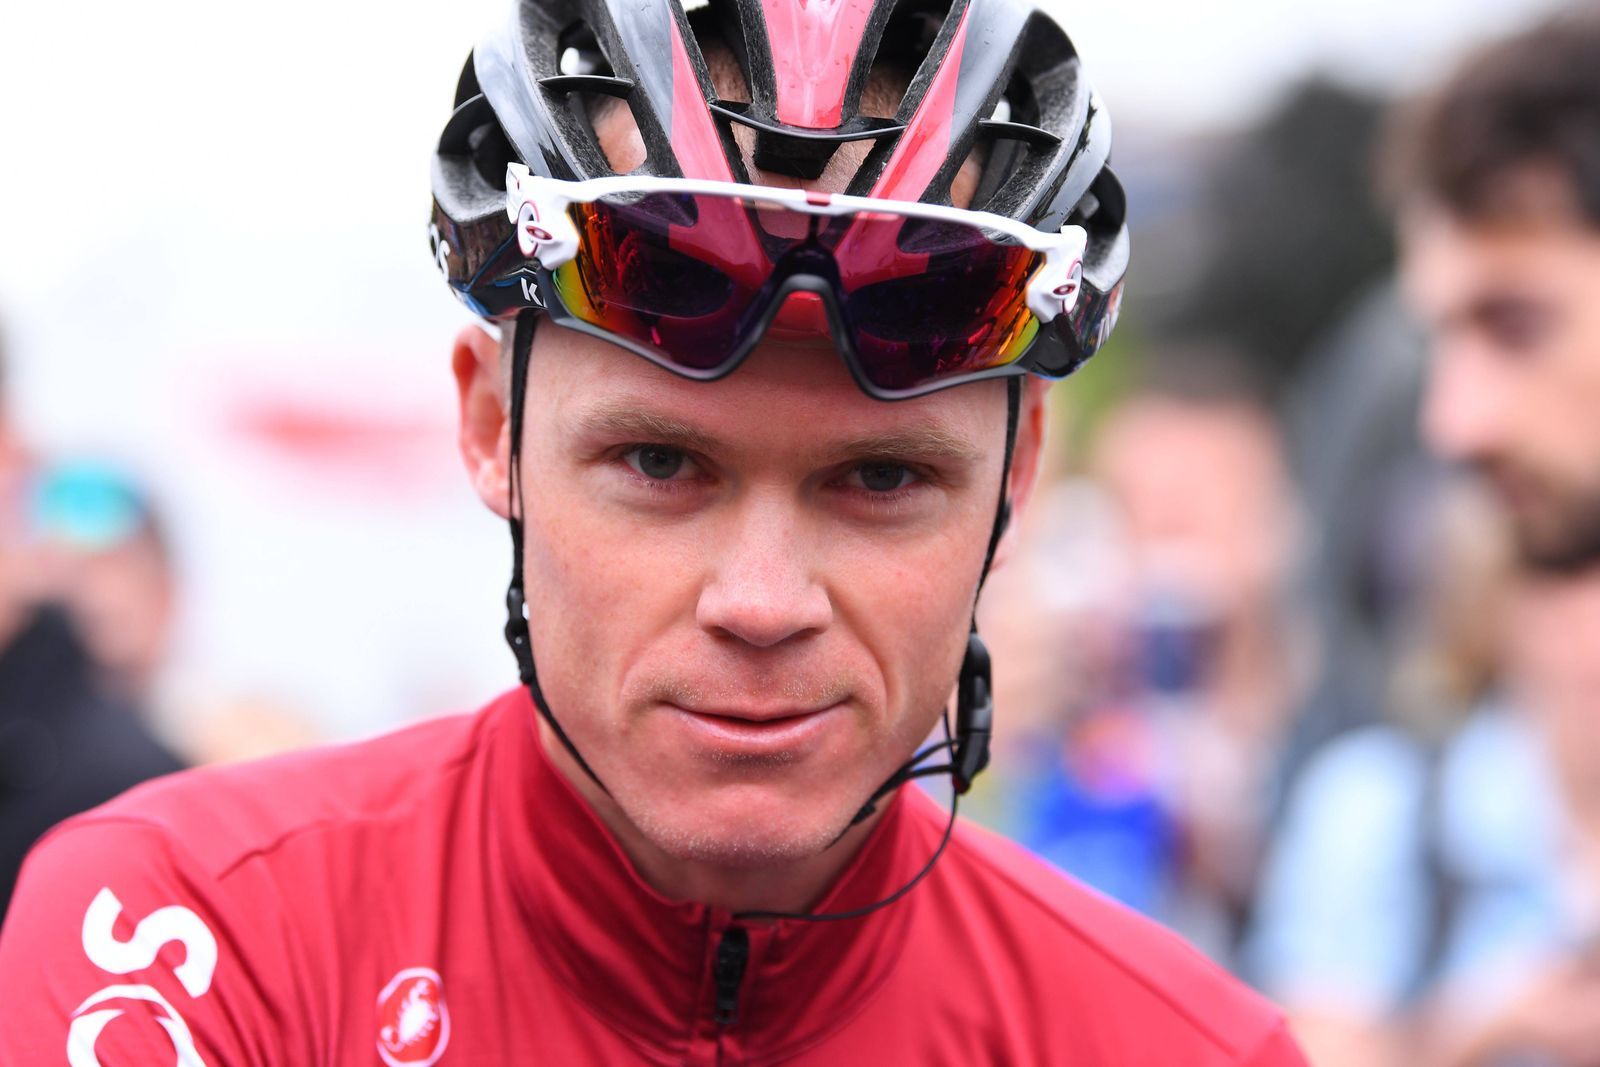 JUSSAC, FRANCE - JUNE 9 : FROOME Chris (GBR) of Team INEOS during stage 1 of the 71th edition of the Criterium du Dauph